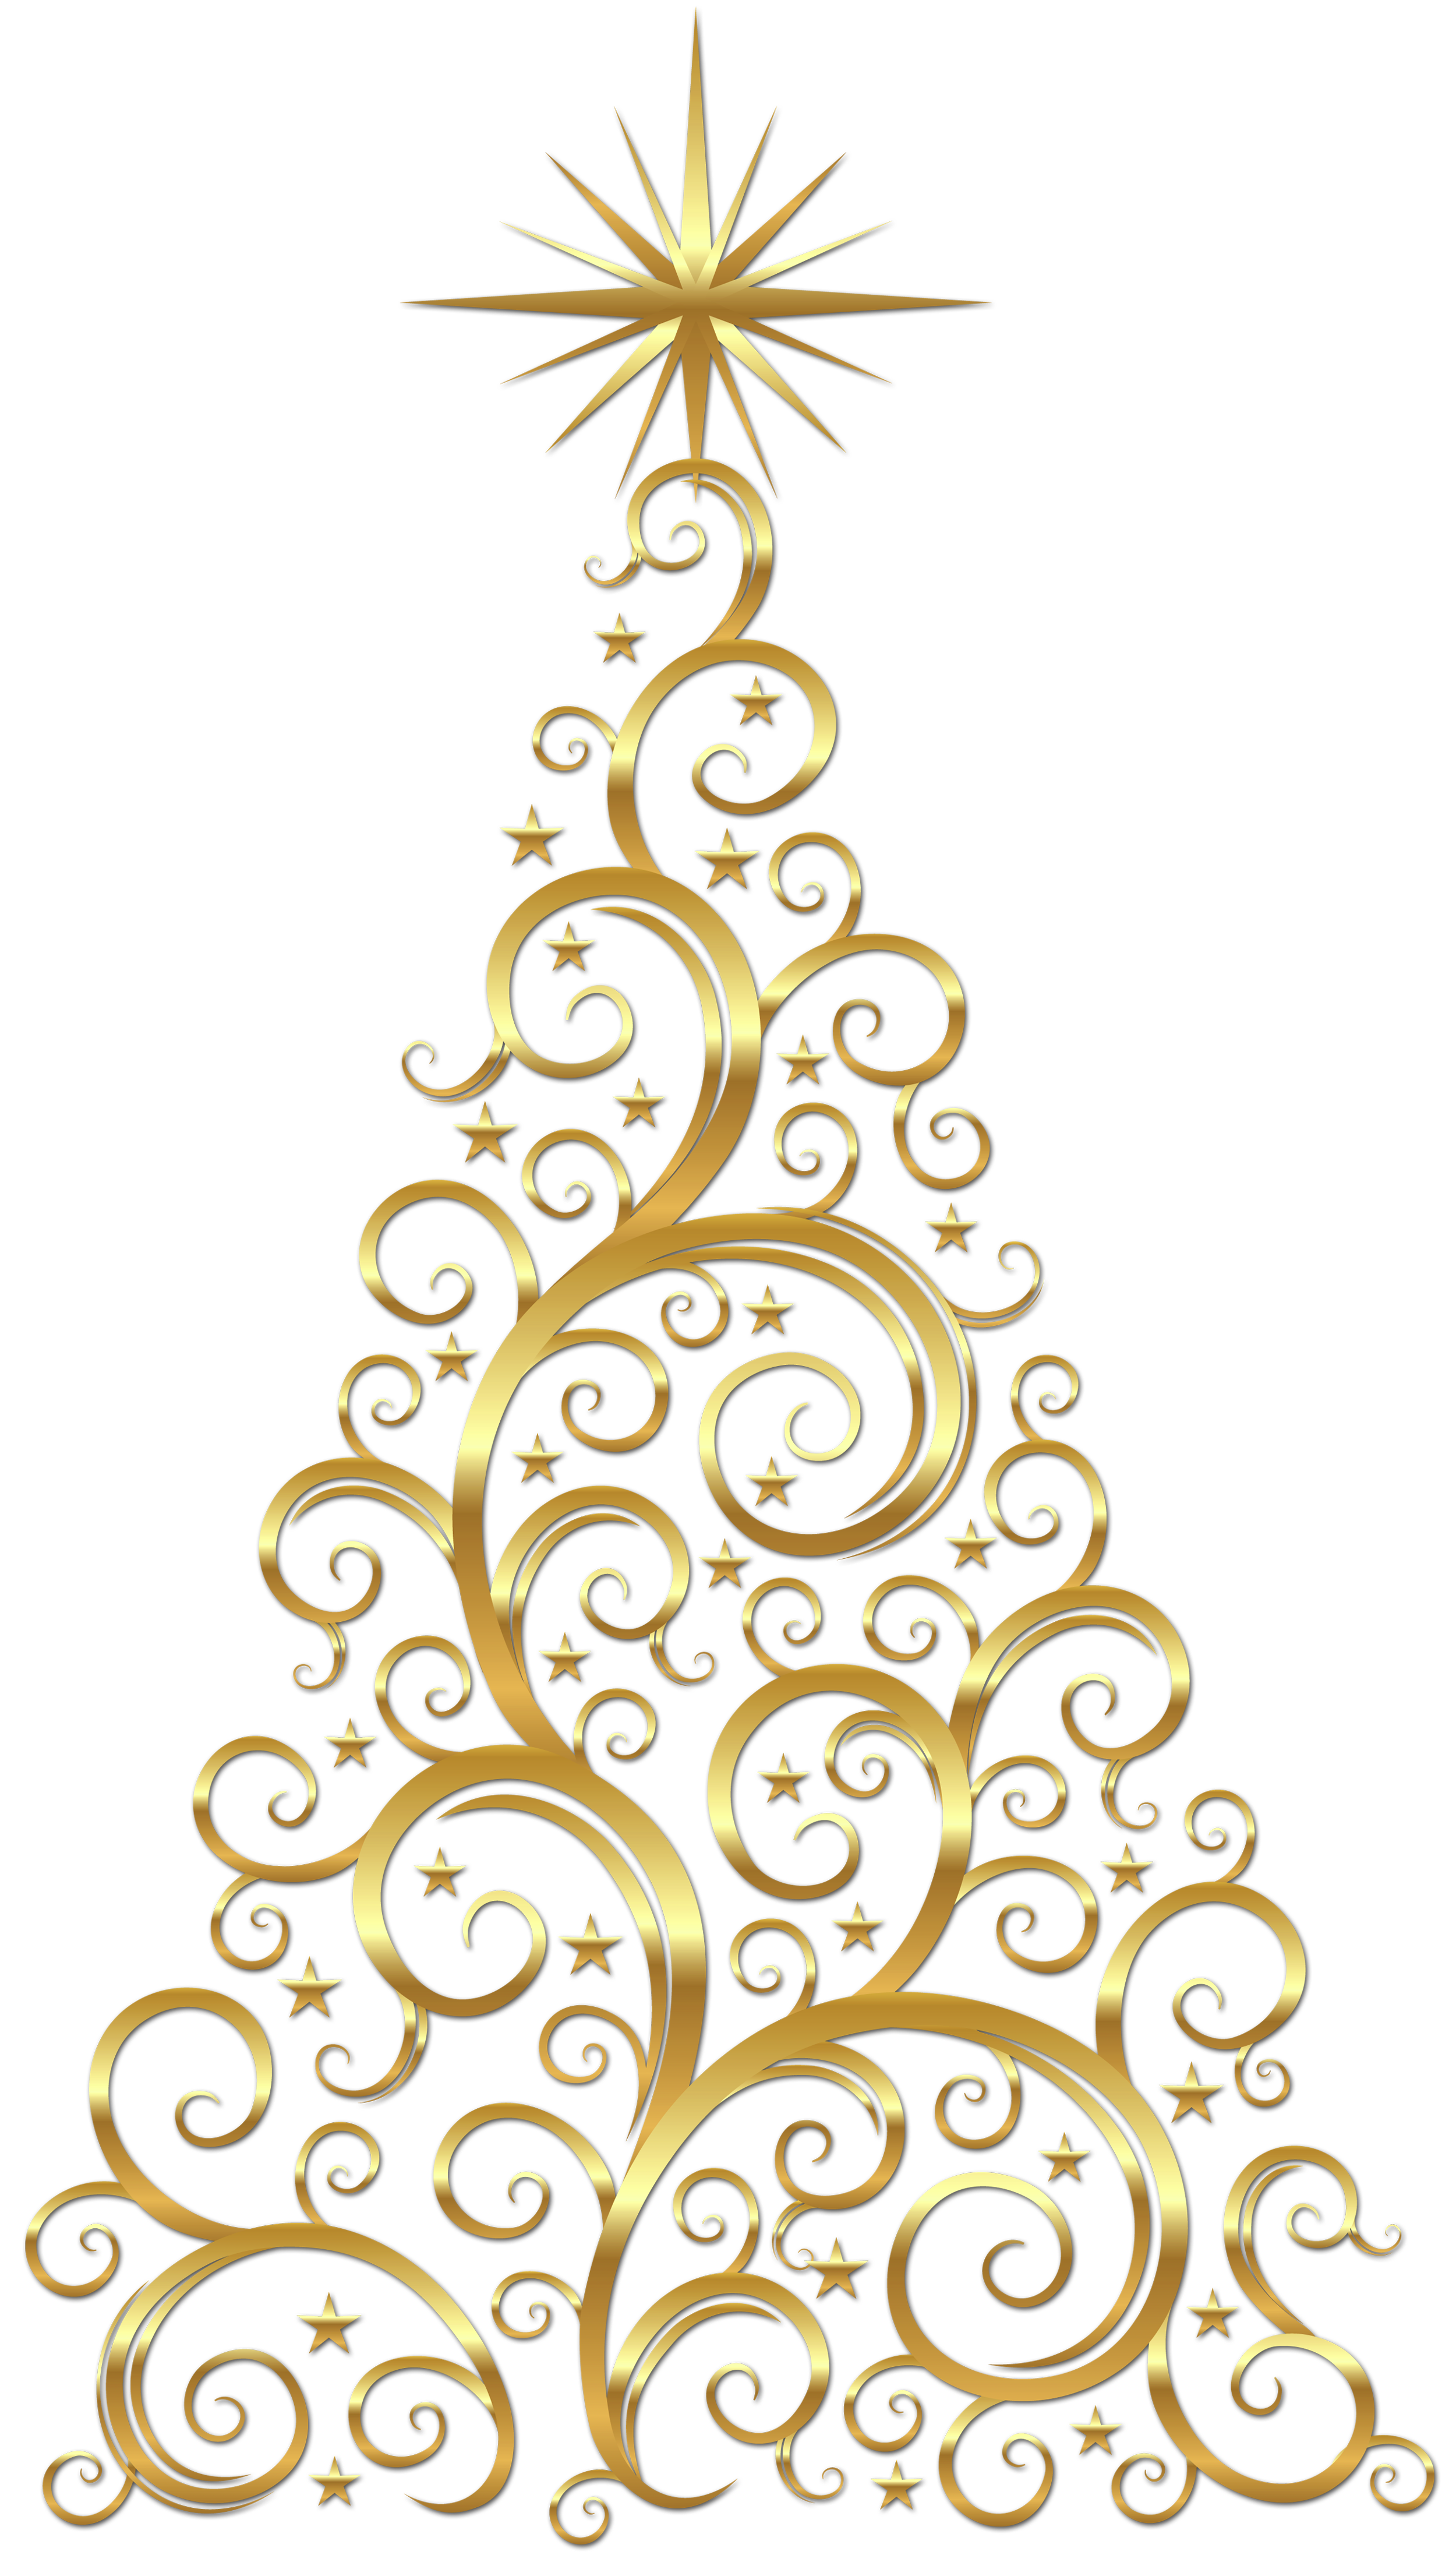 A Christmas tree is a decorated tree usually an evergreen conifer